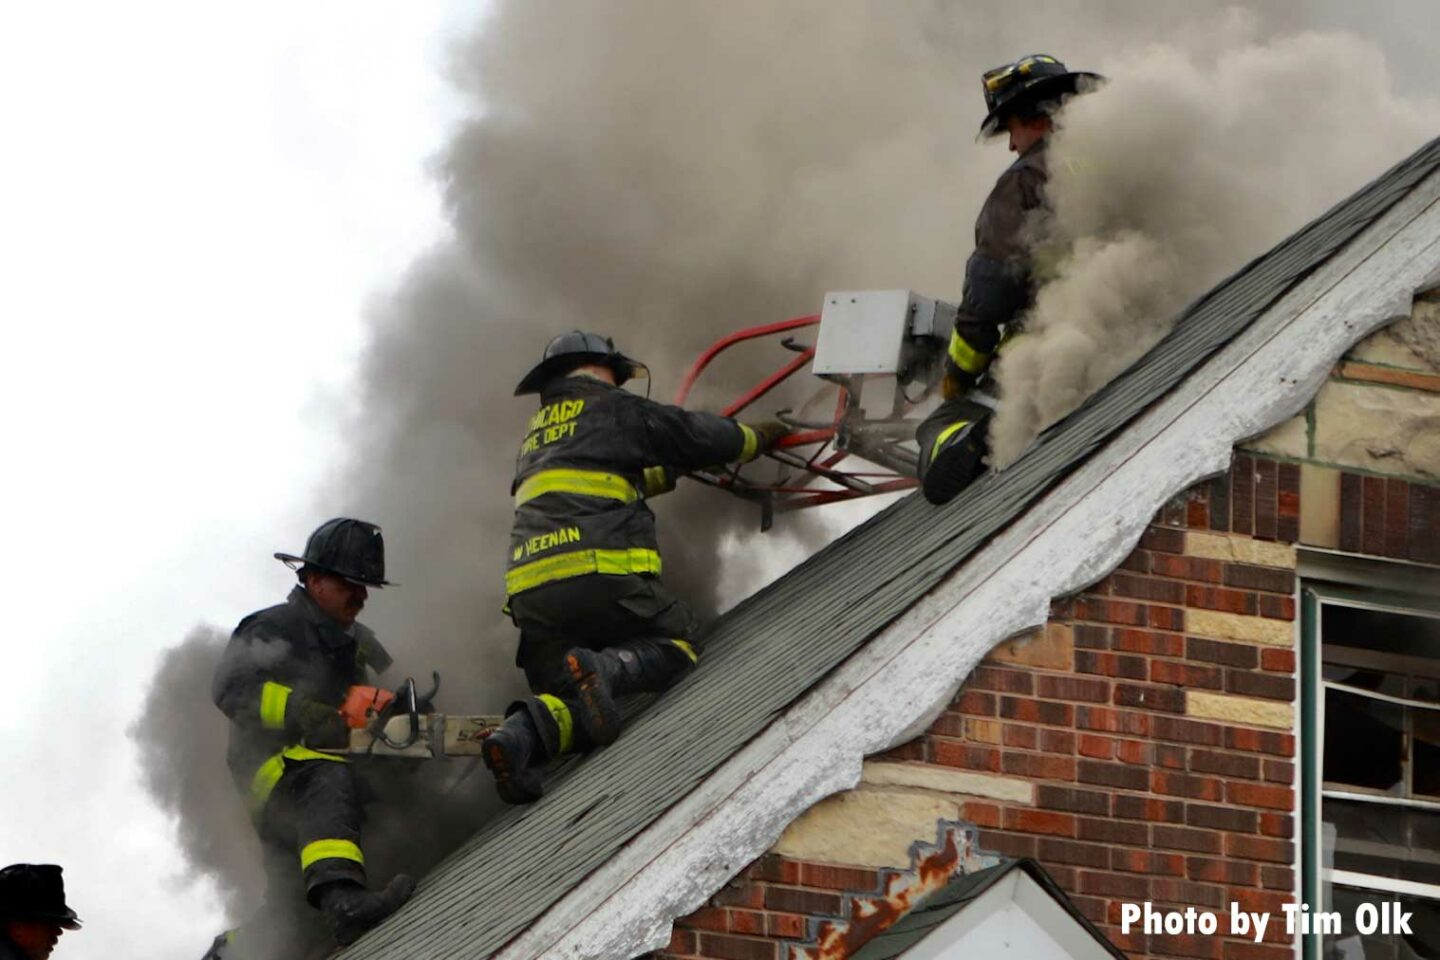 Firefighter with a power saw operating on the roof of a home